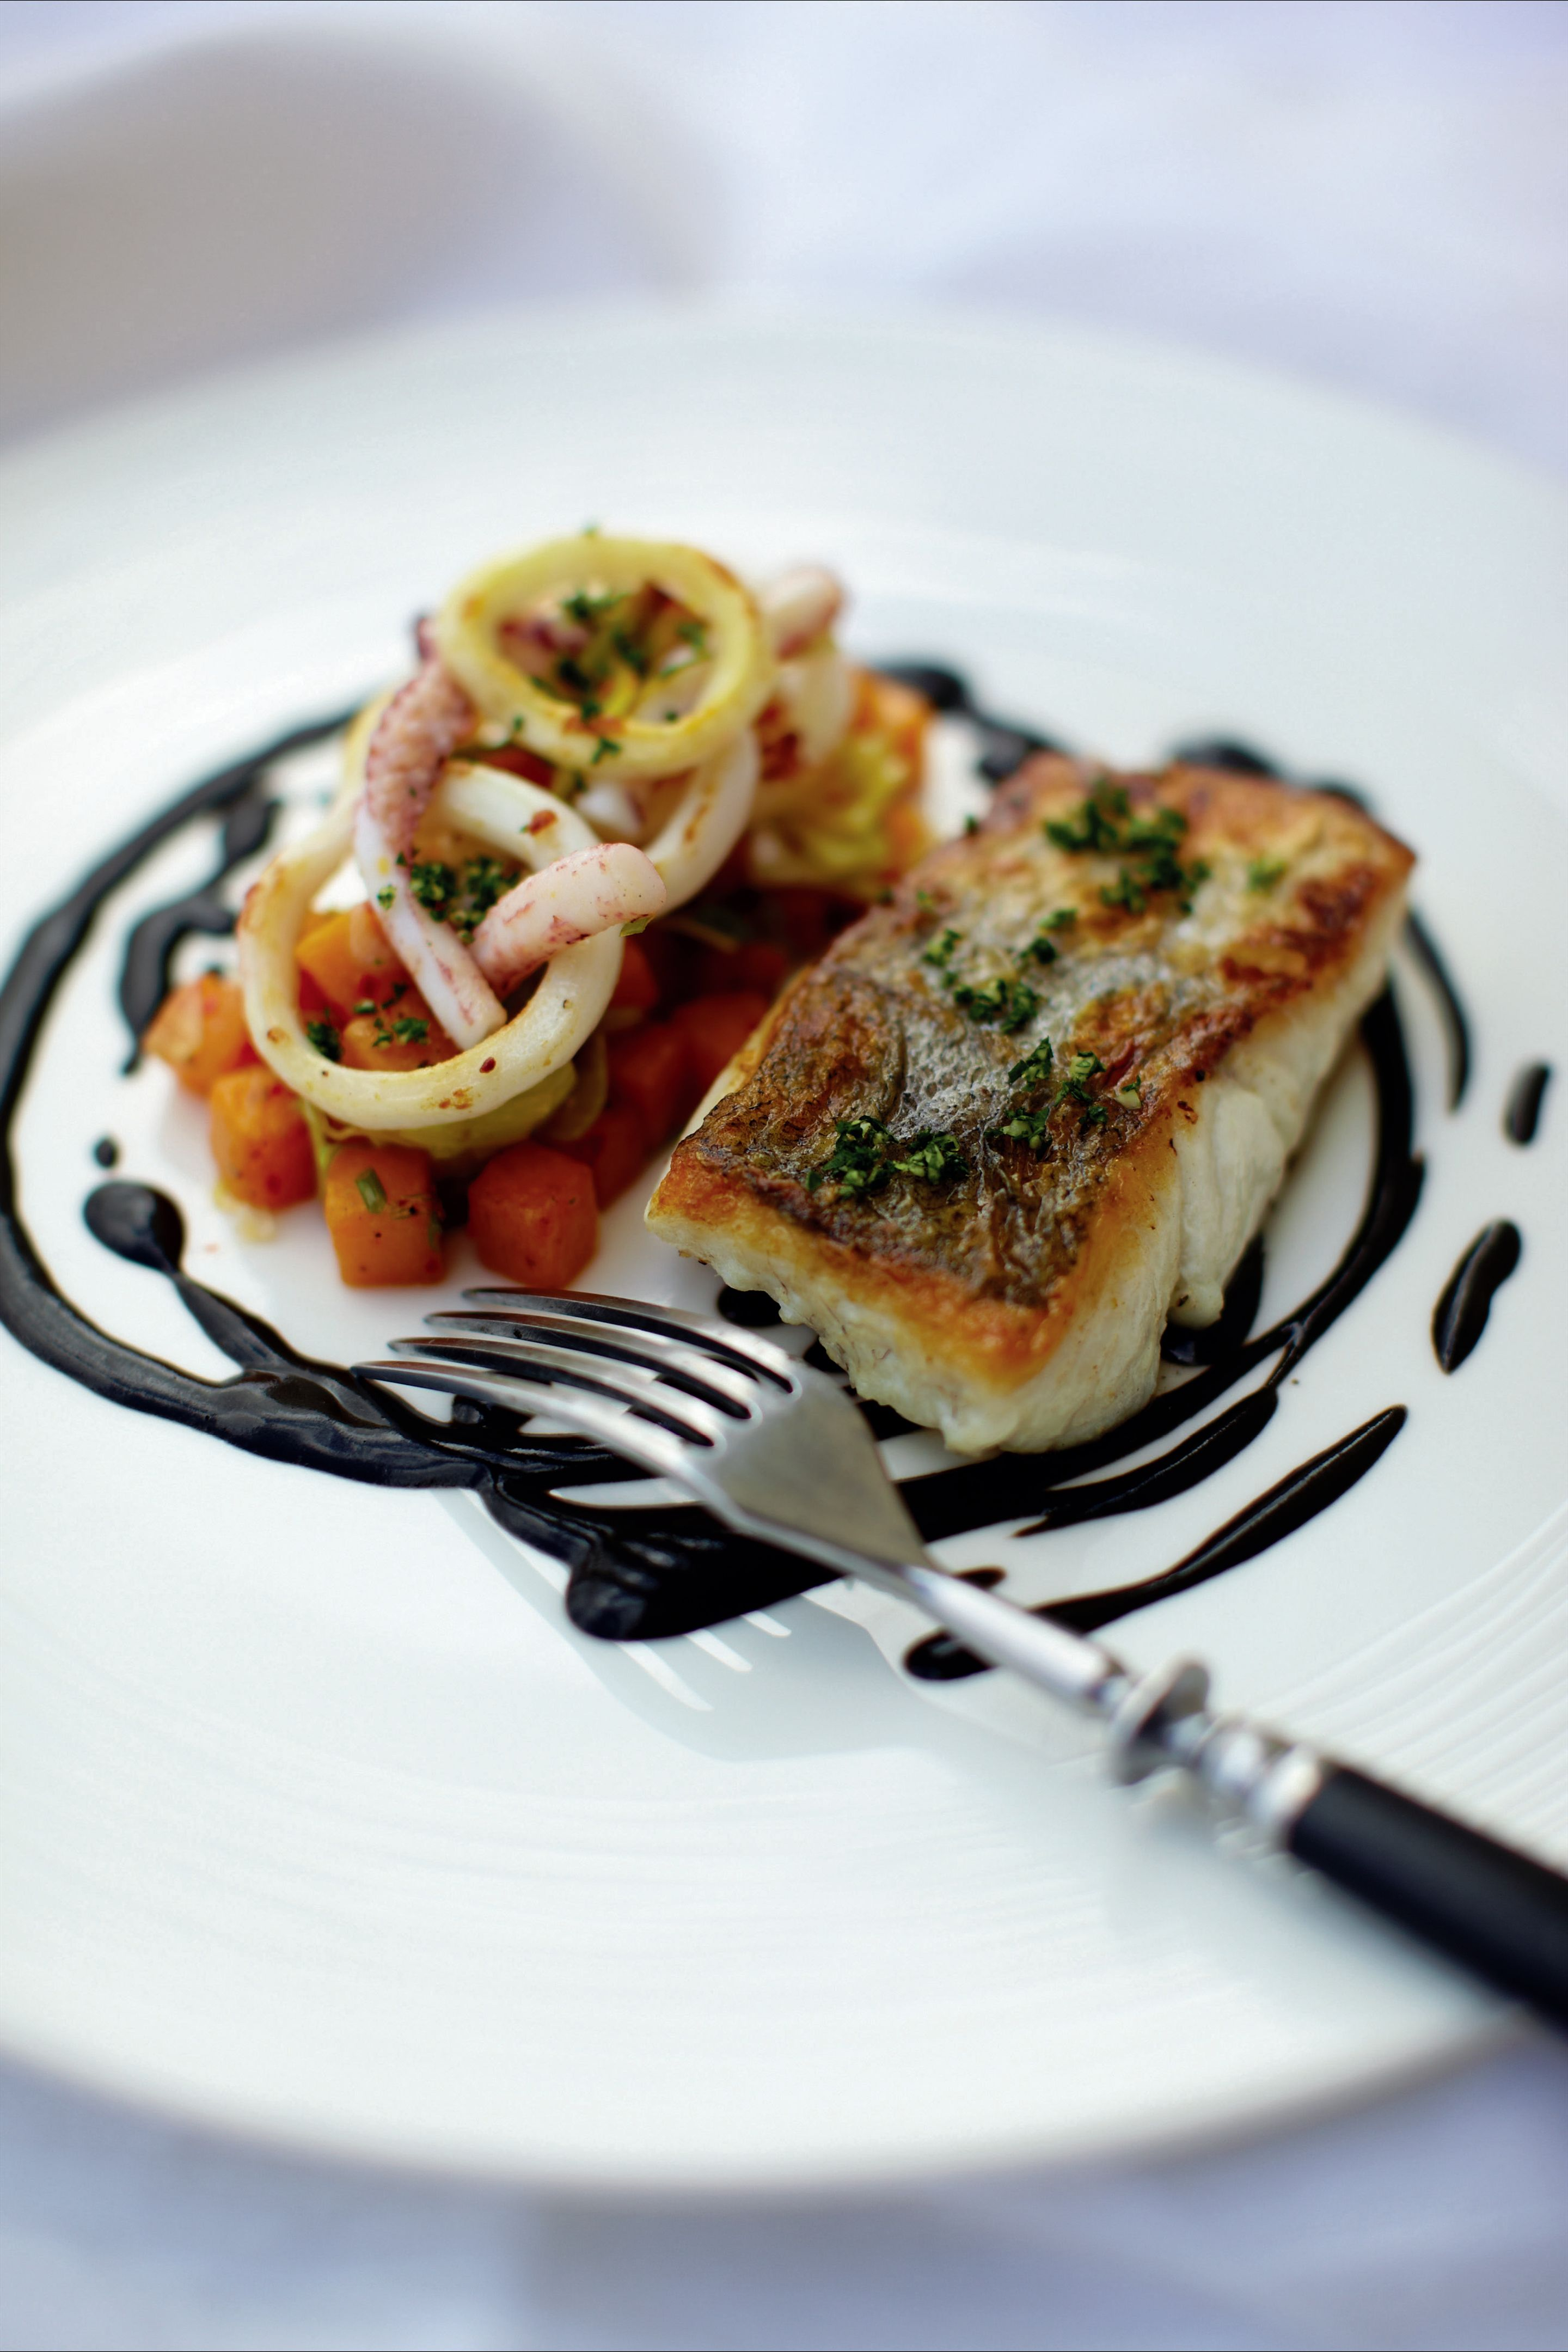 Salt hake with squid ink, parsley and tomato and garlic sauce